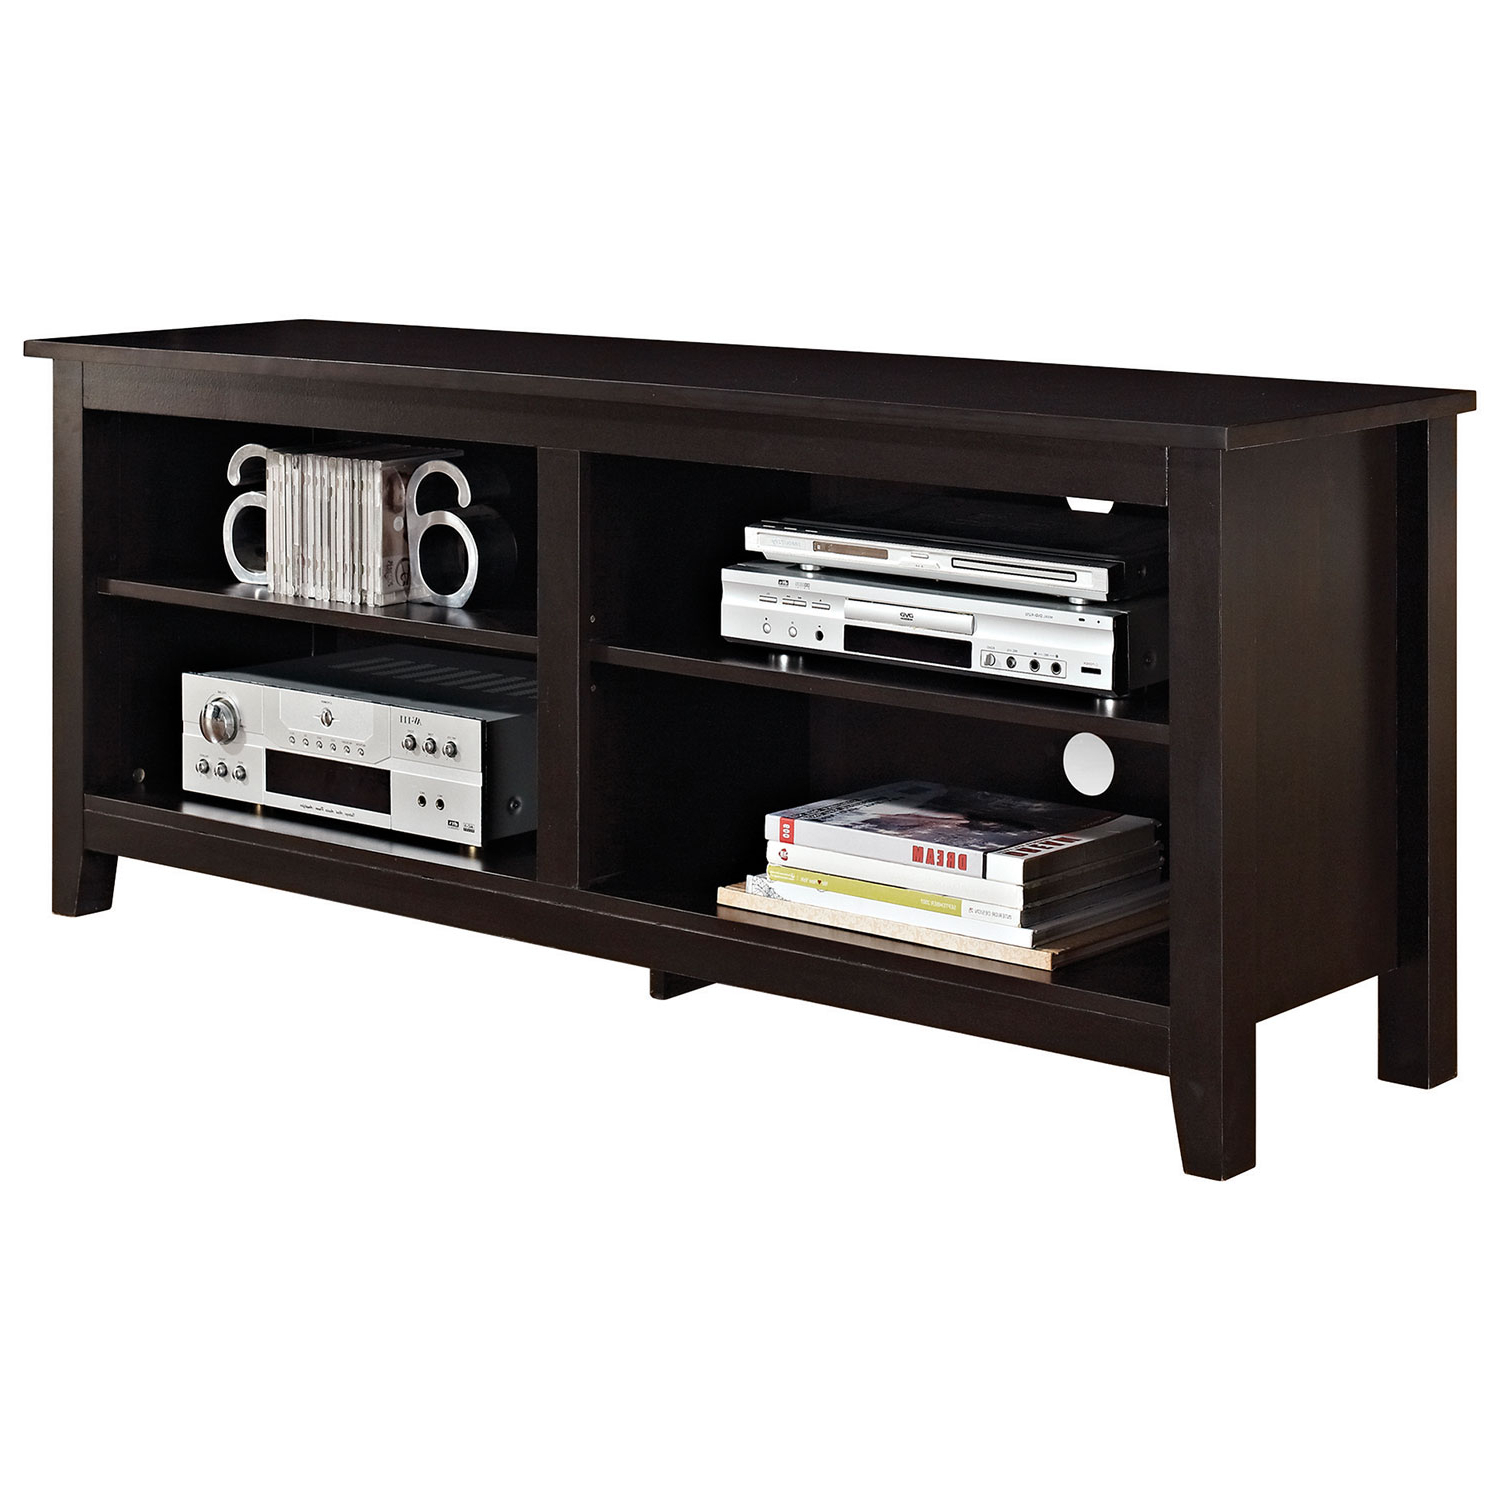 "Winmoor Home 65"" Tv Stand – Espresso : Tv Stands – Best Buy Canada Regarding Newest Expresso Tv Stands (View 20 of 20)"